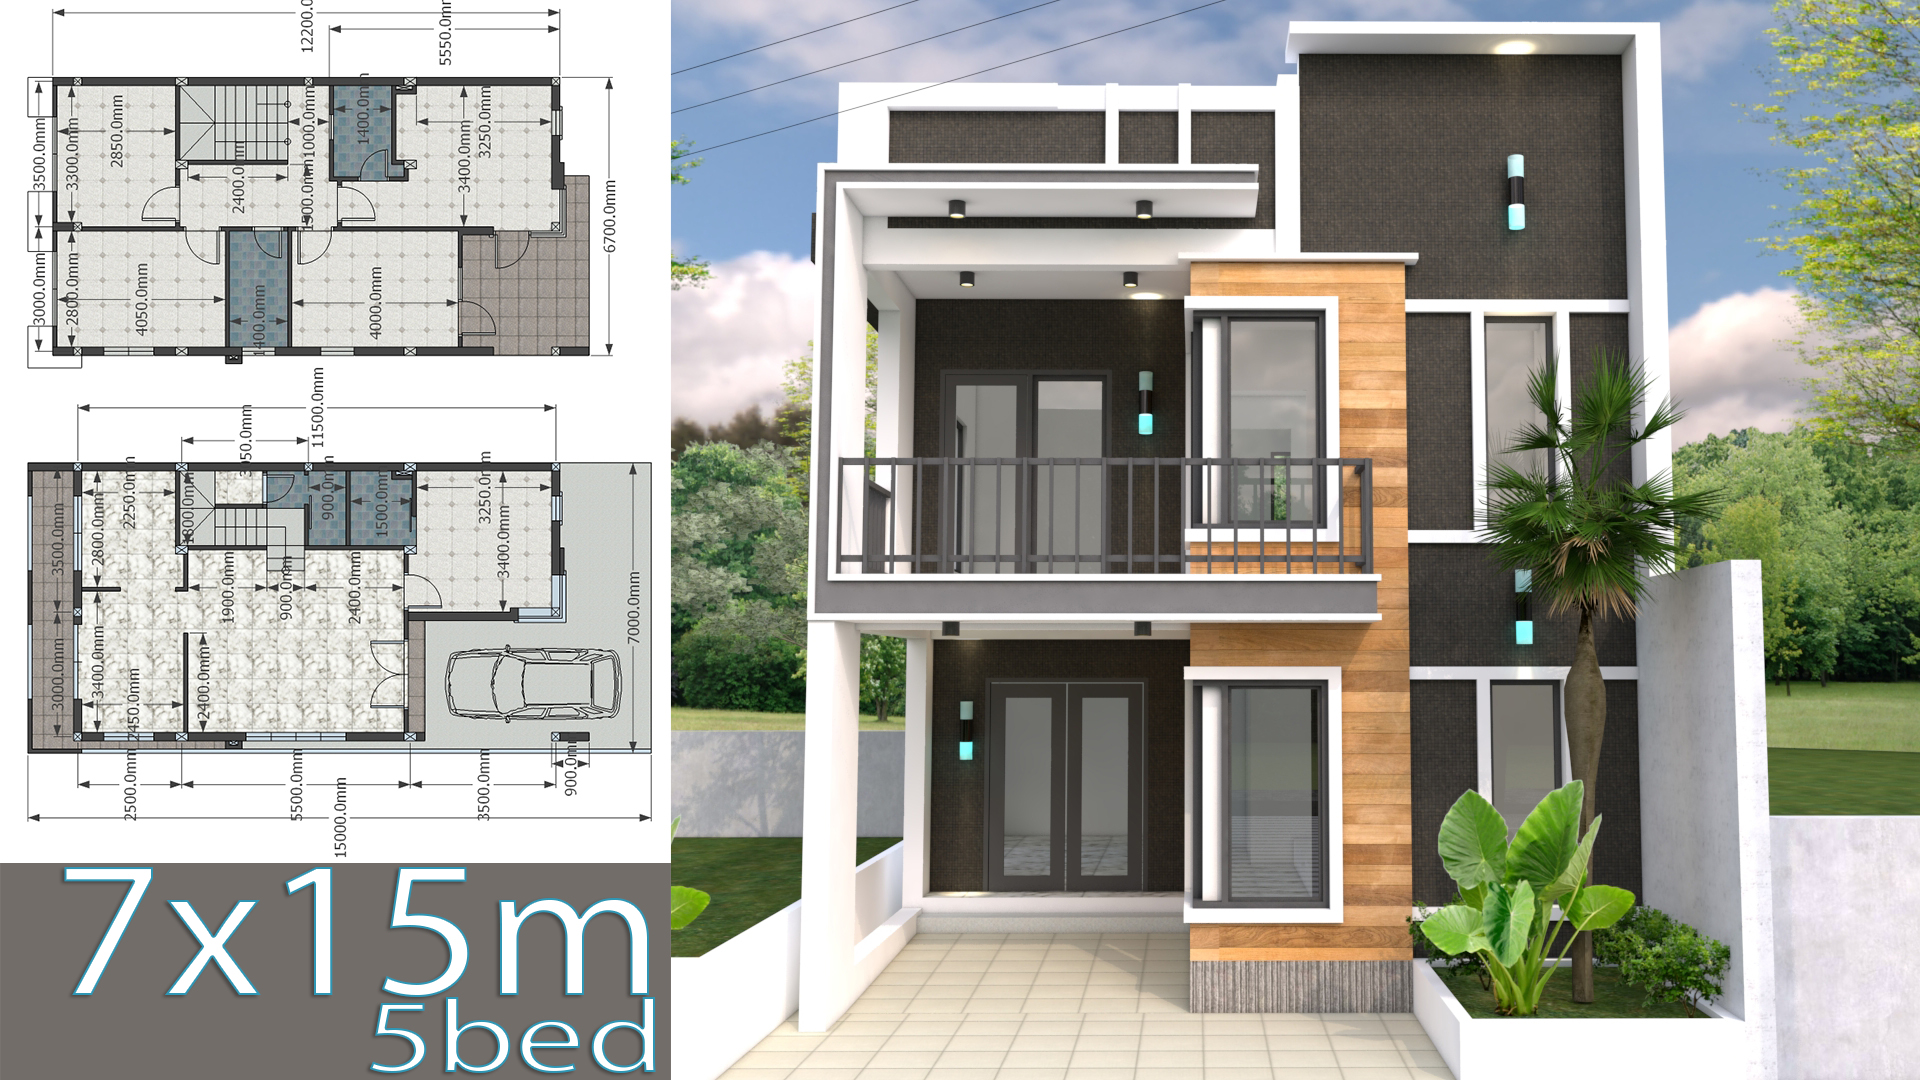 House Plans 7x15m With 4 Bedrooms Samhouseplans